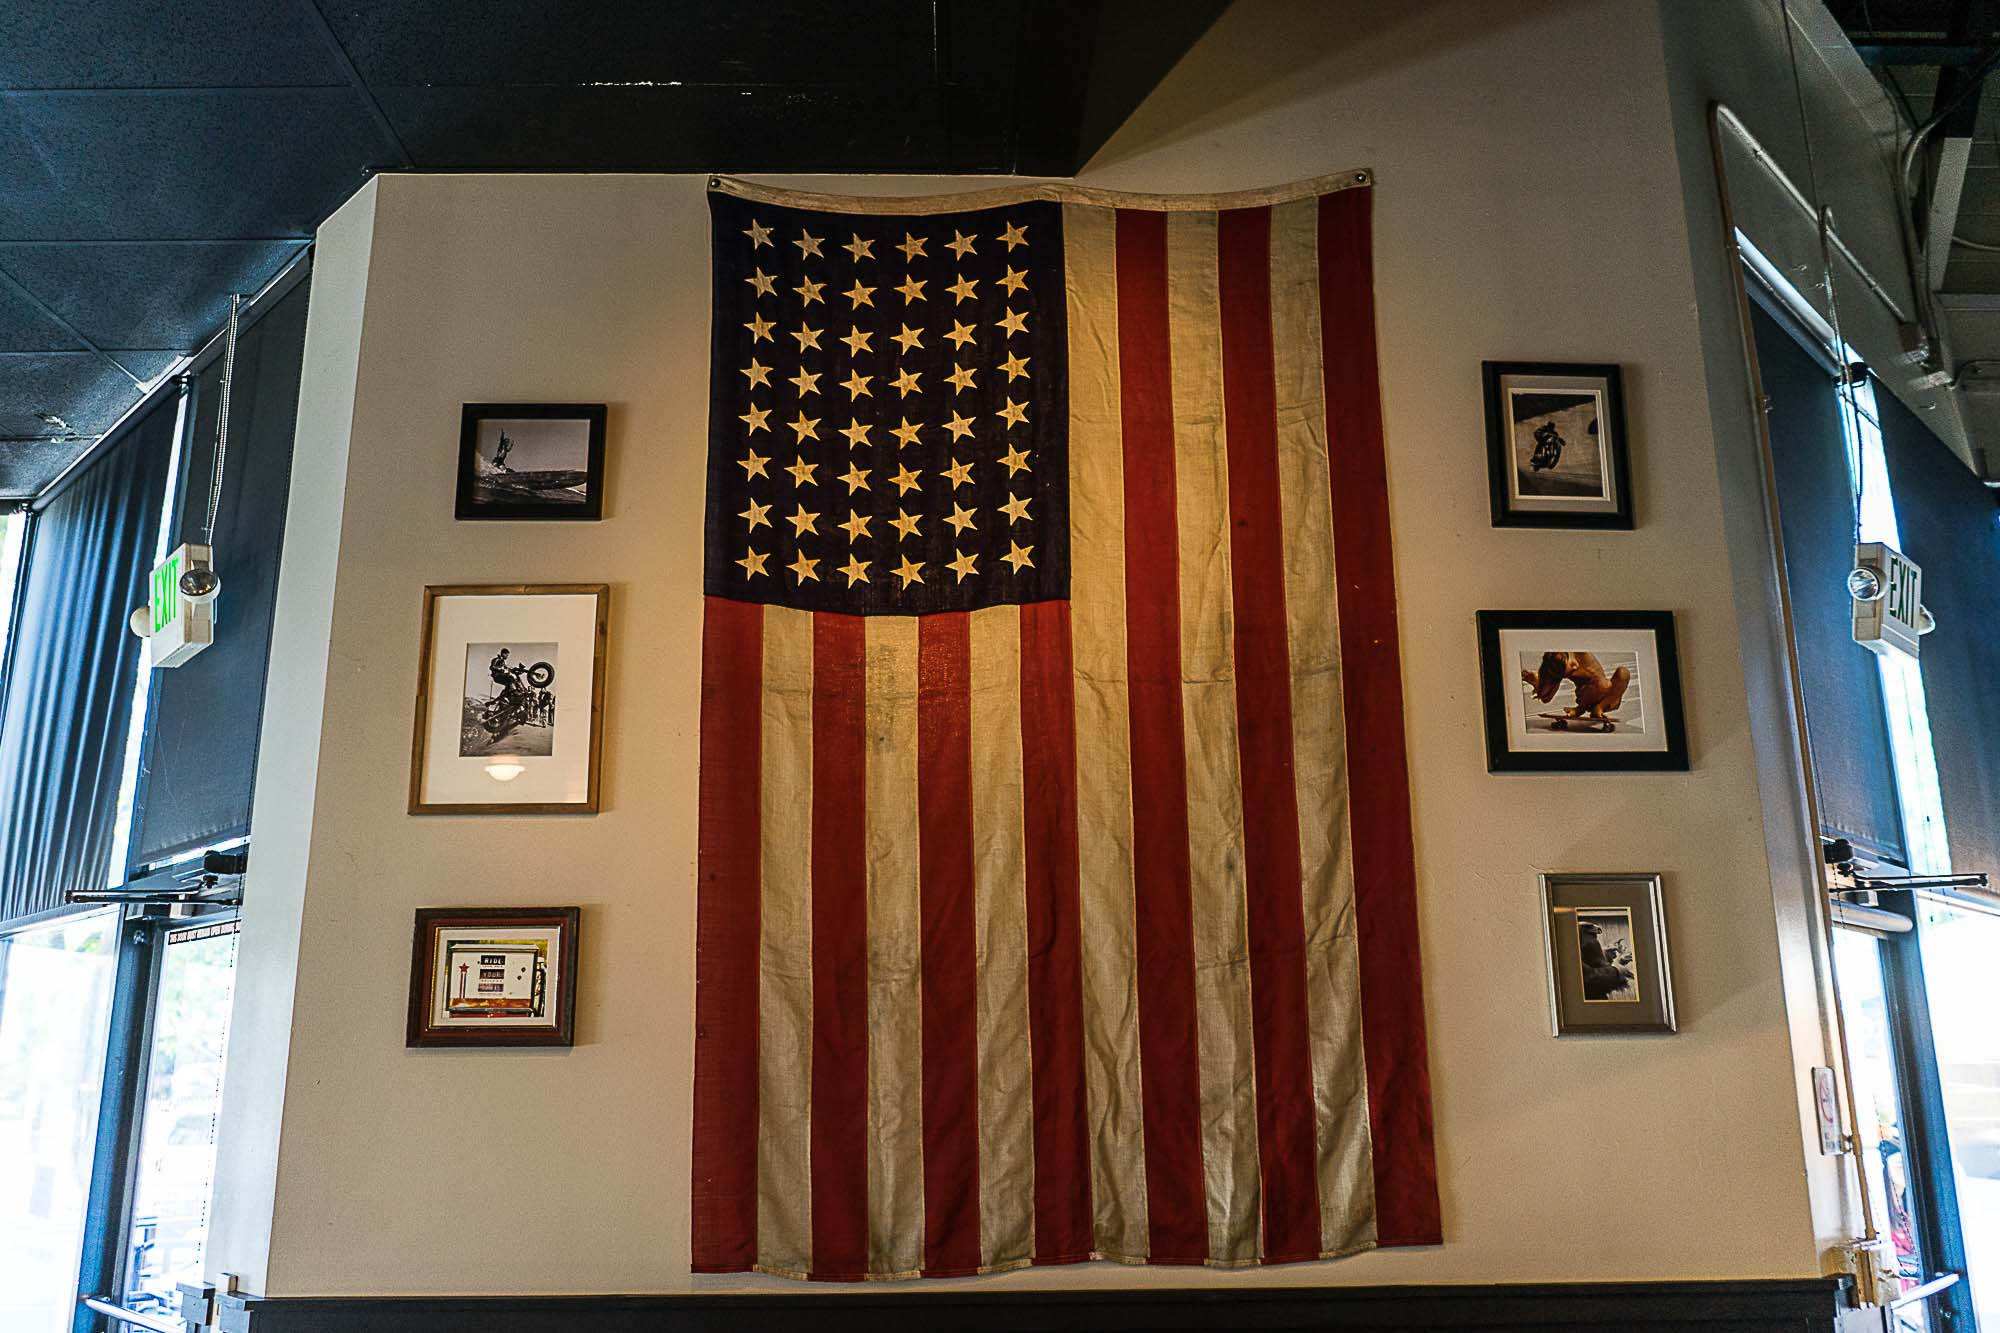 Decorative wall with an American flag at The Universal in Denver.